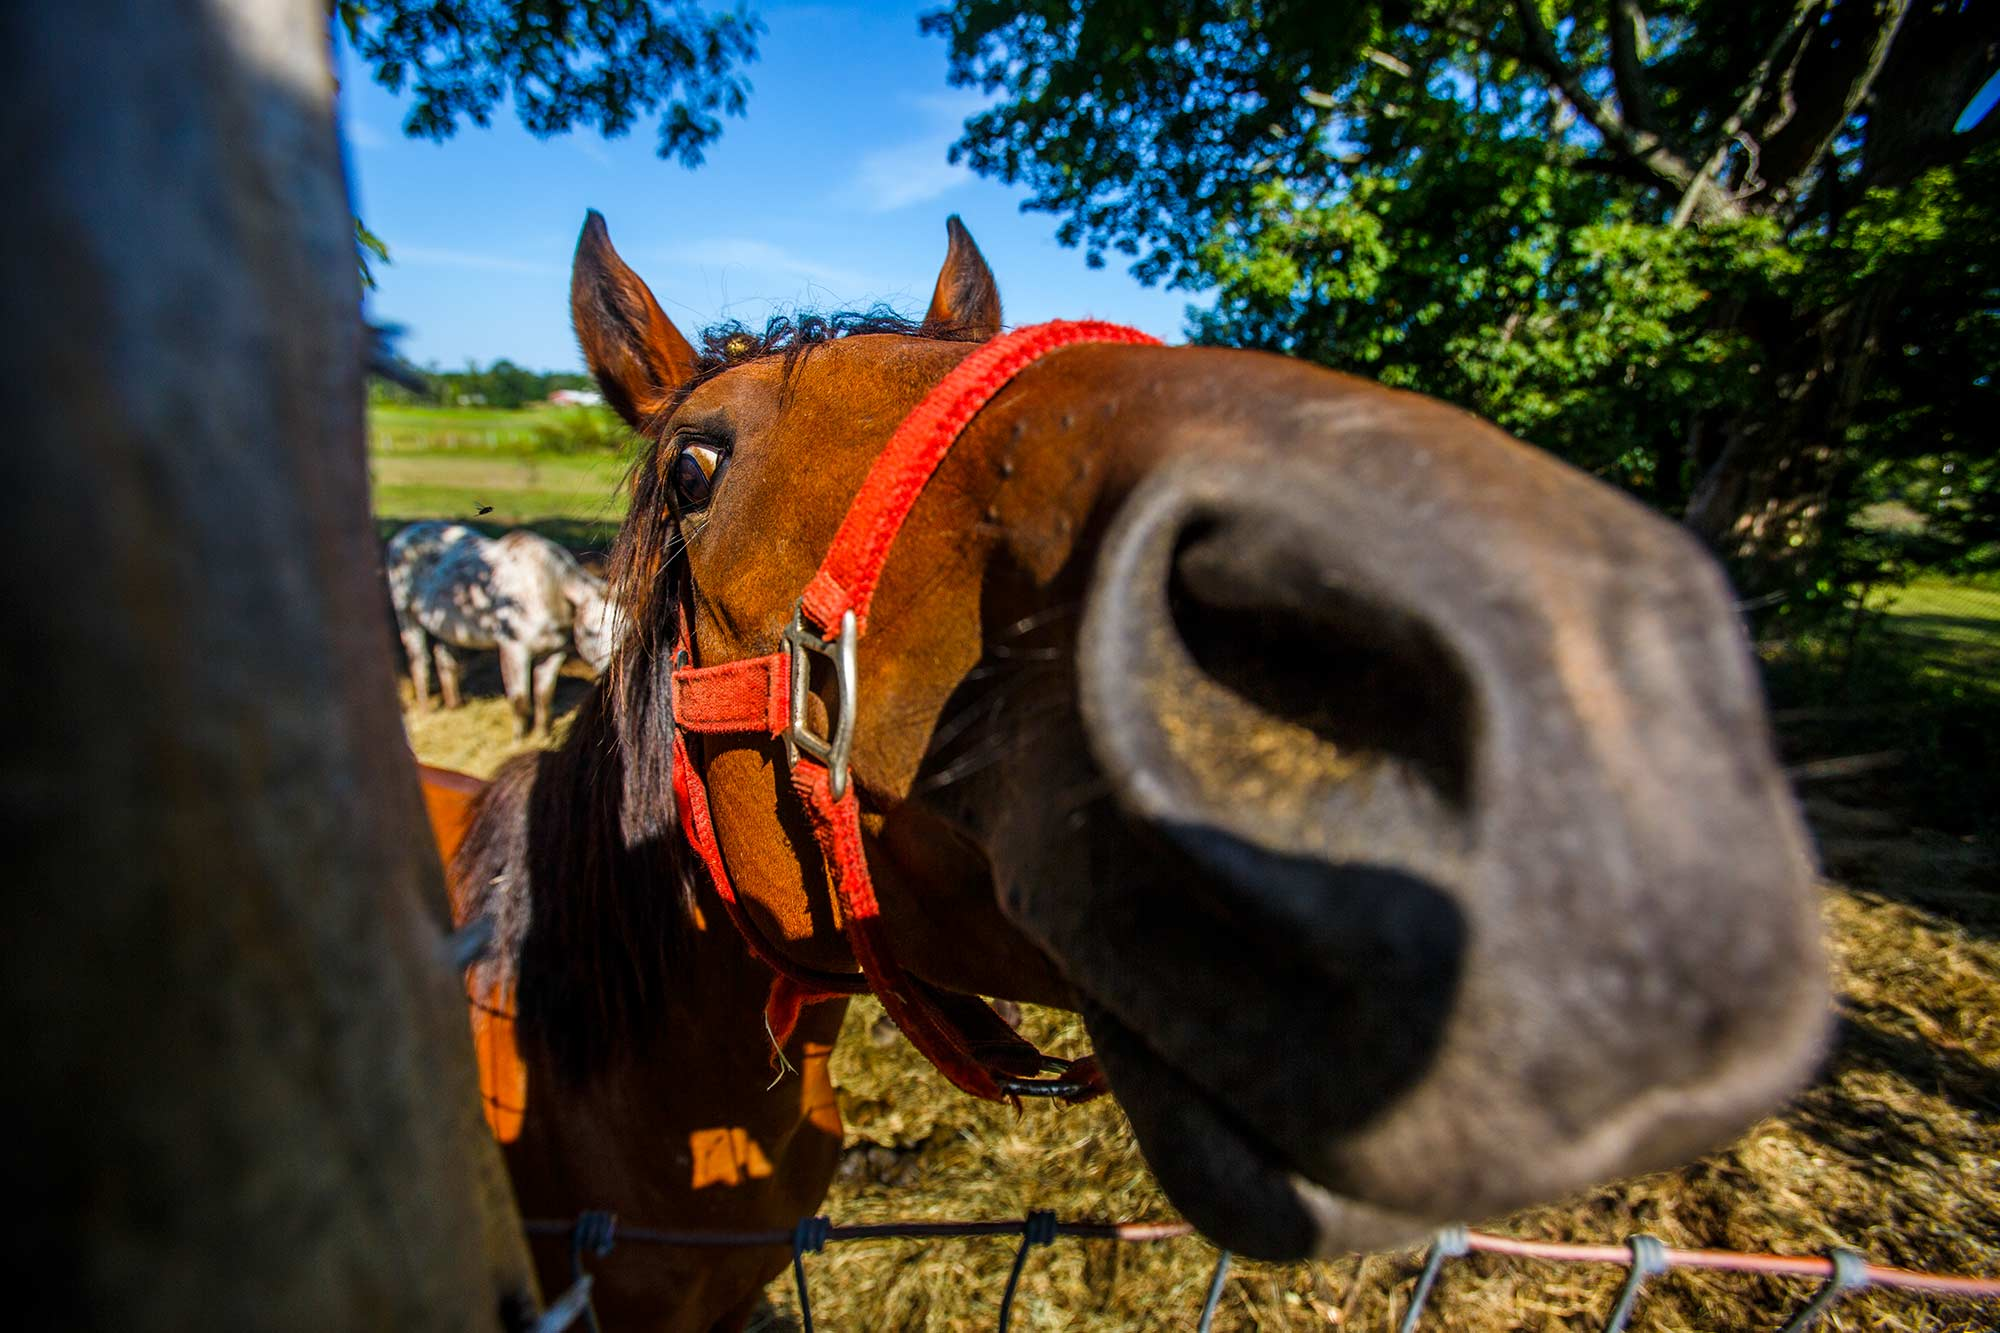 Why the Long Face?, Granby, CT - 9/6/15